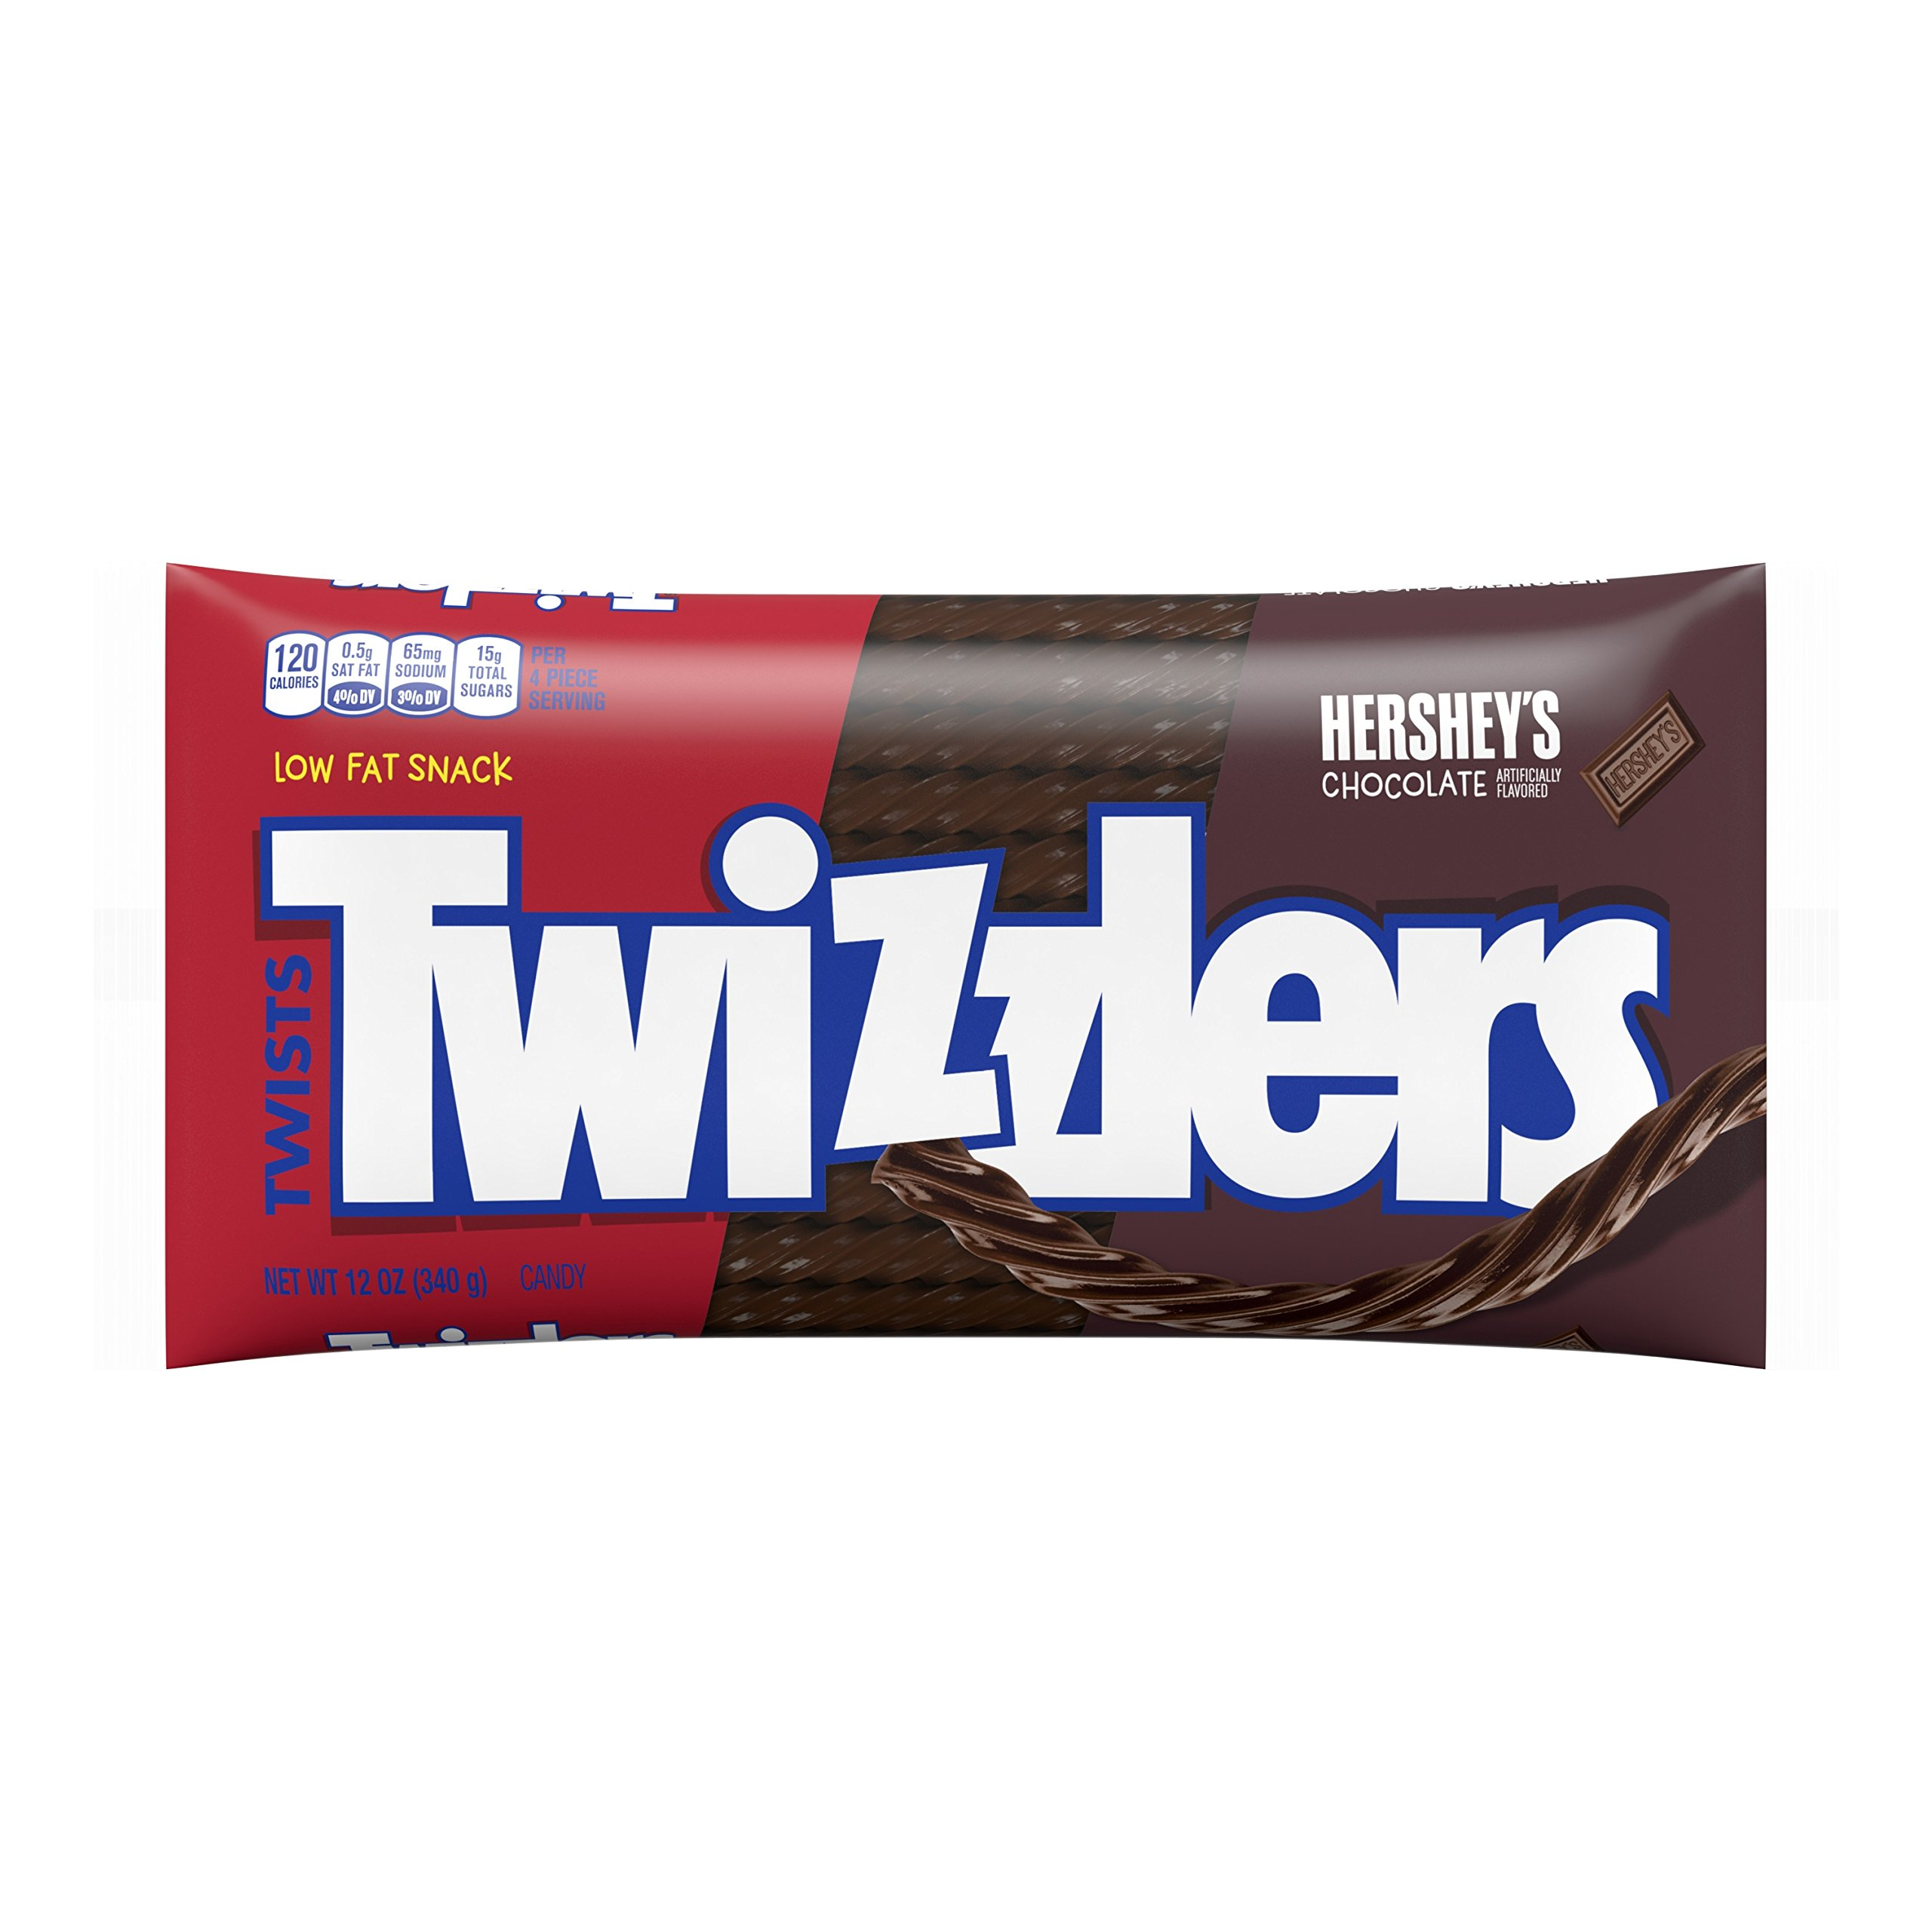 TWIZZLERS Chocolate Licorice Candy, 12 Ounce Bag (Pack of 6)